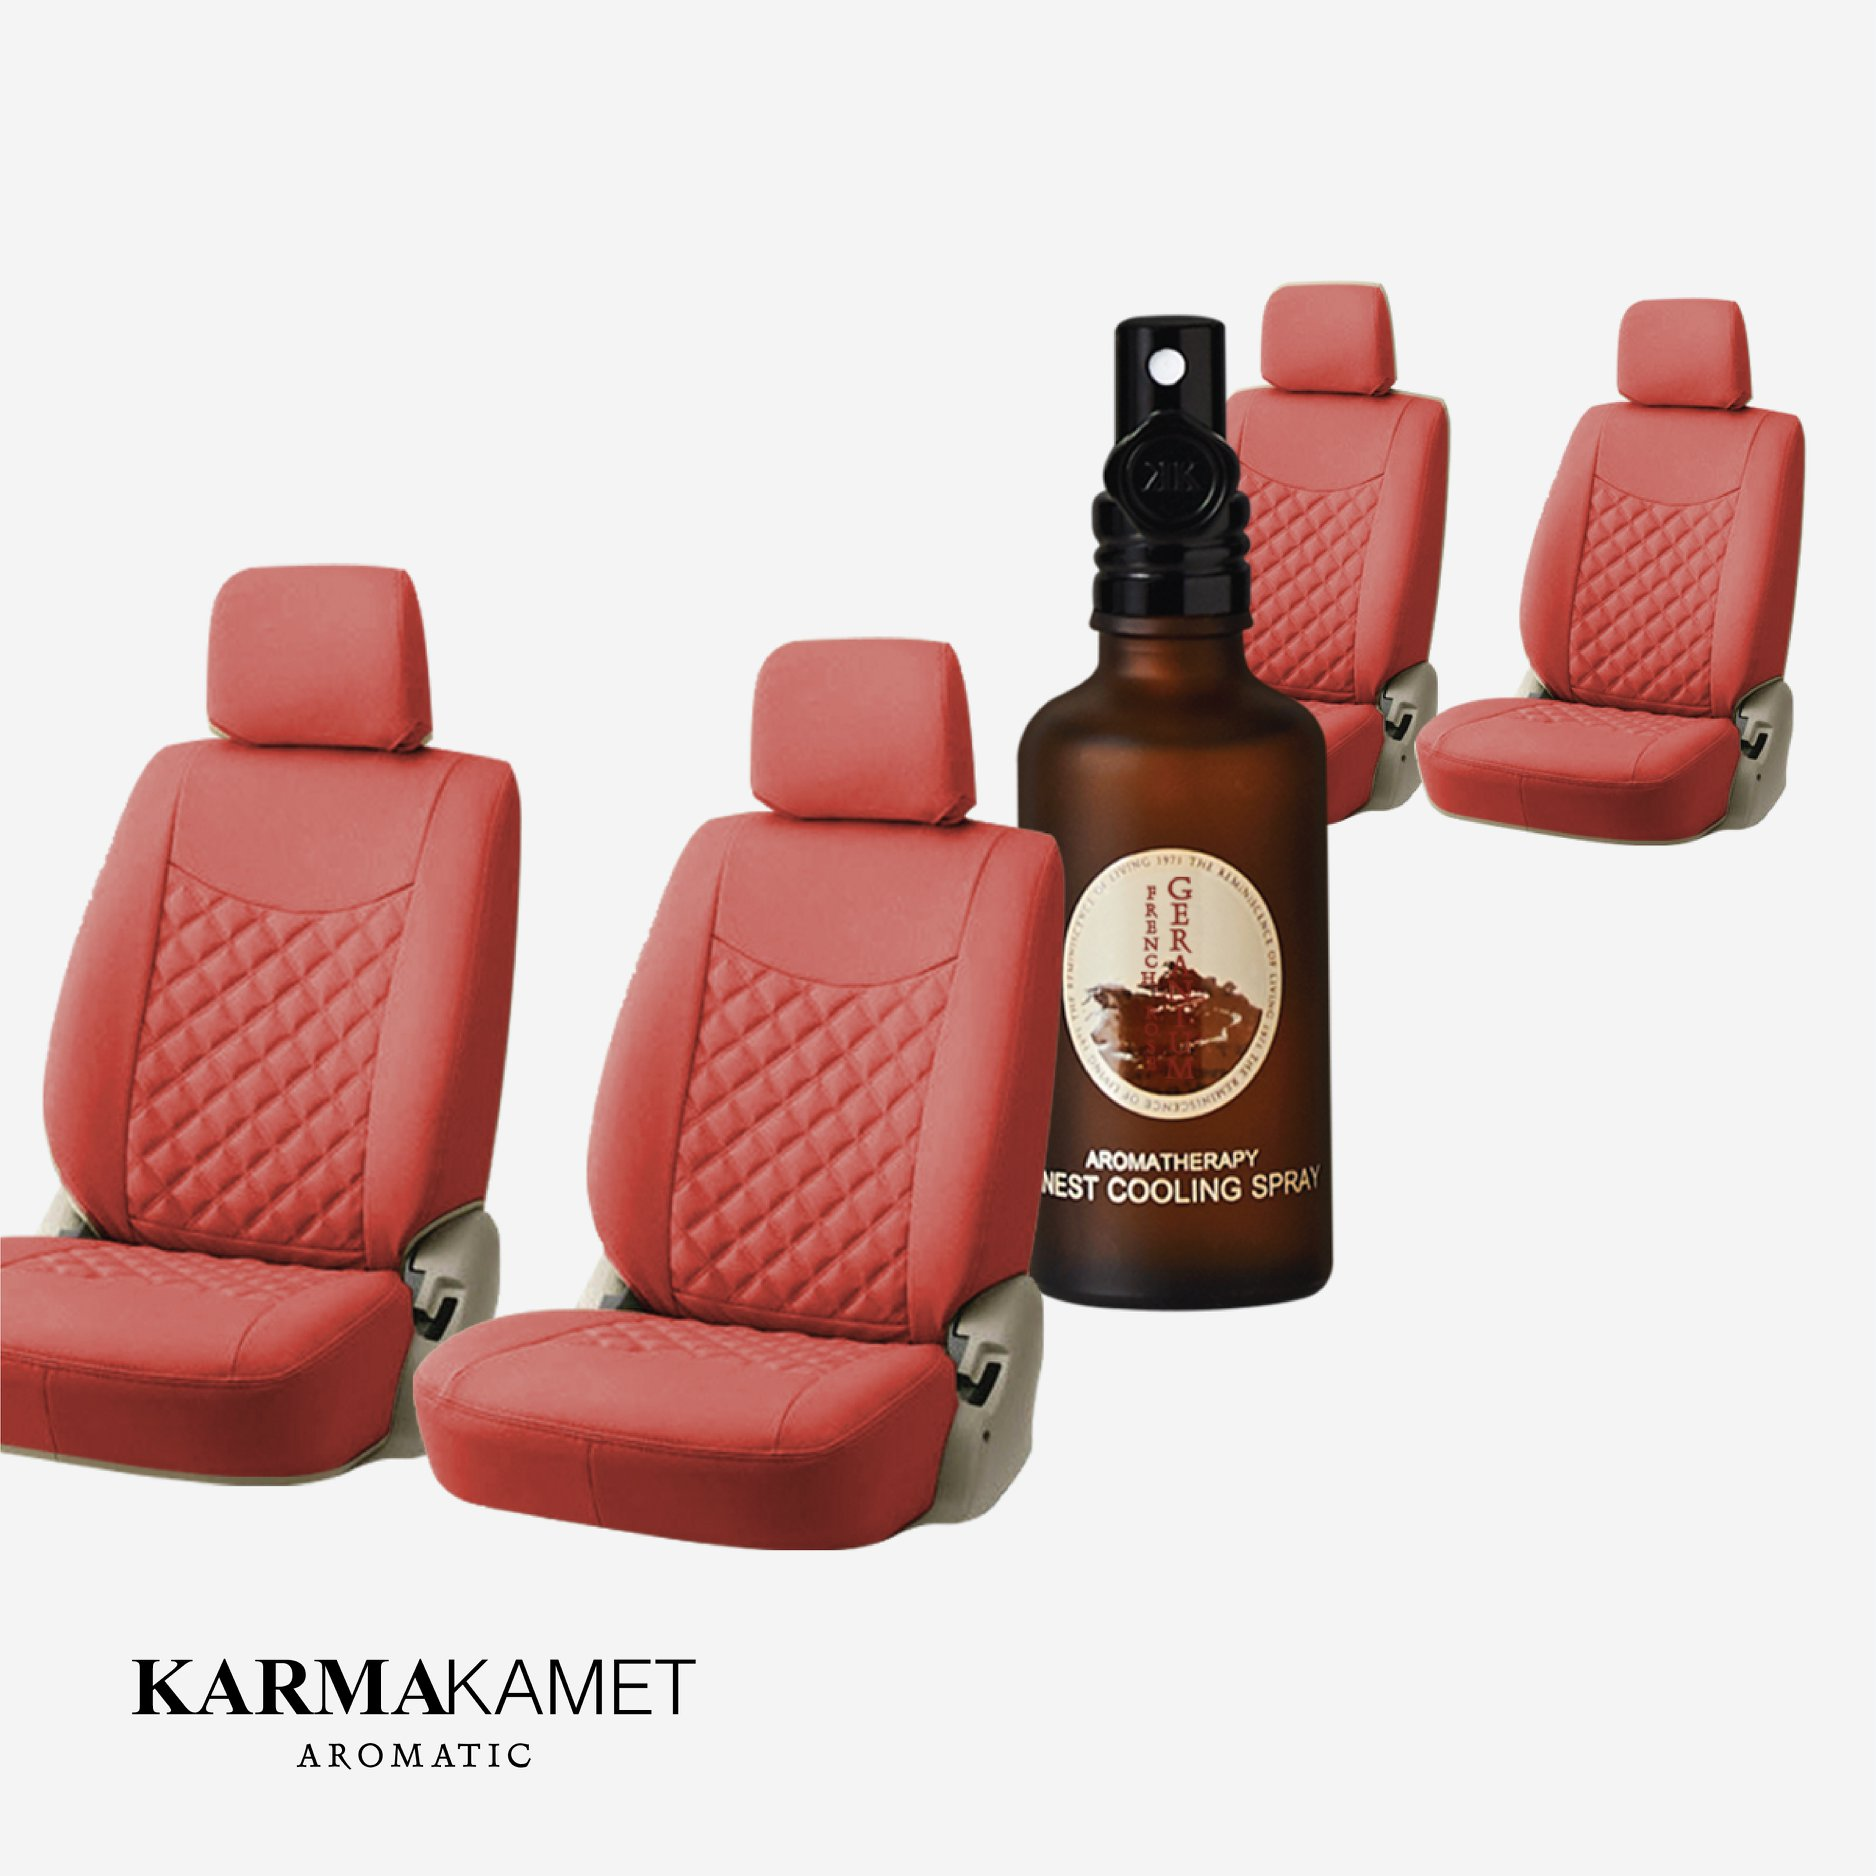 Aromatherapy Finest Cooling Spray